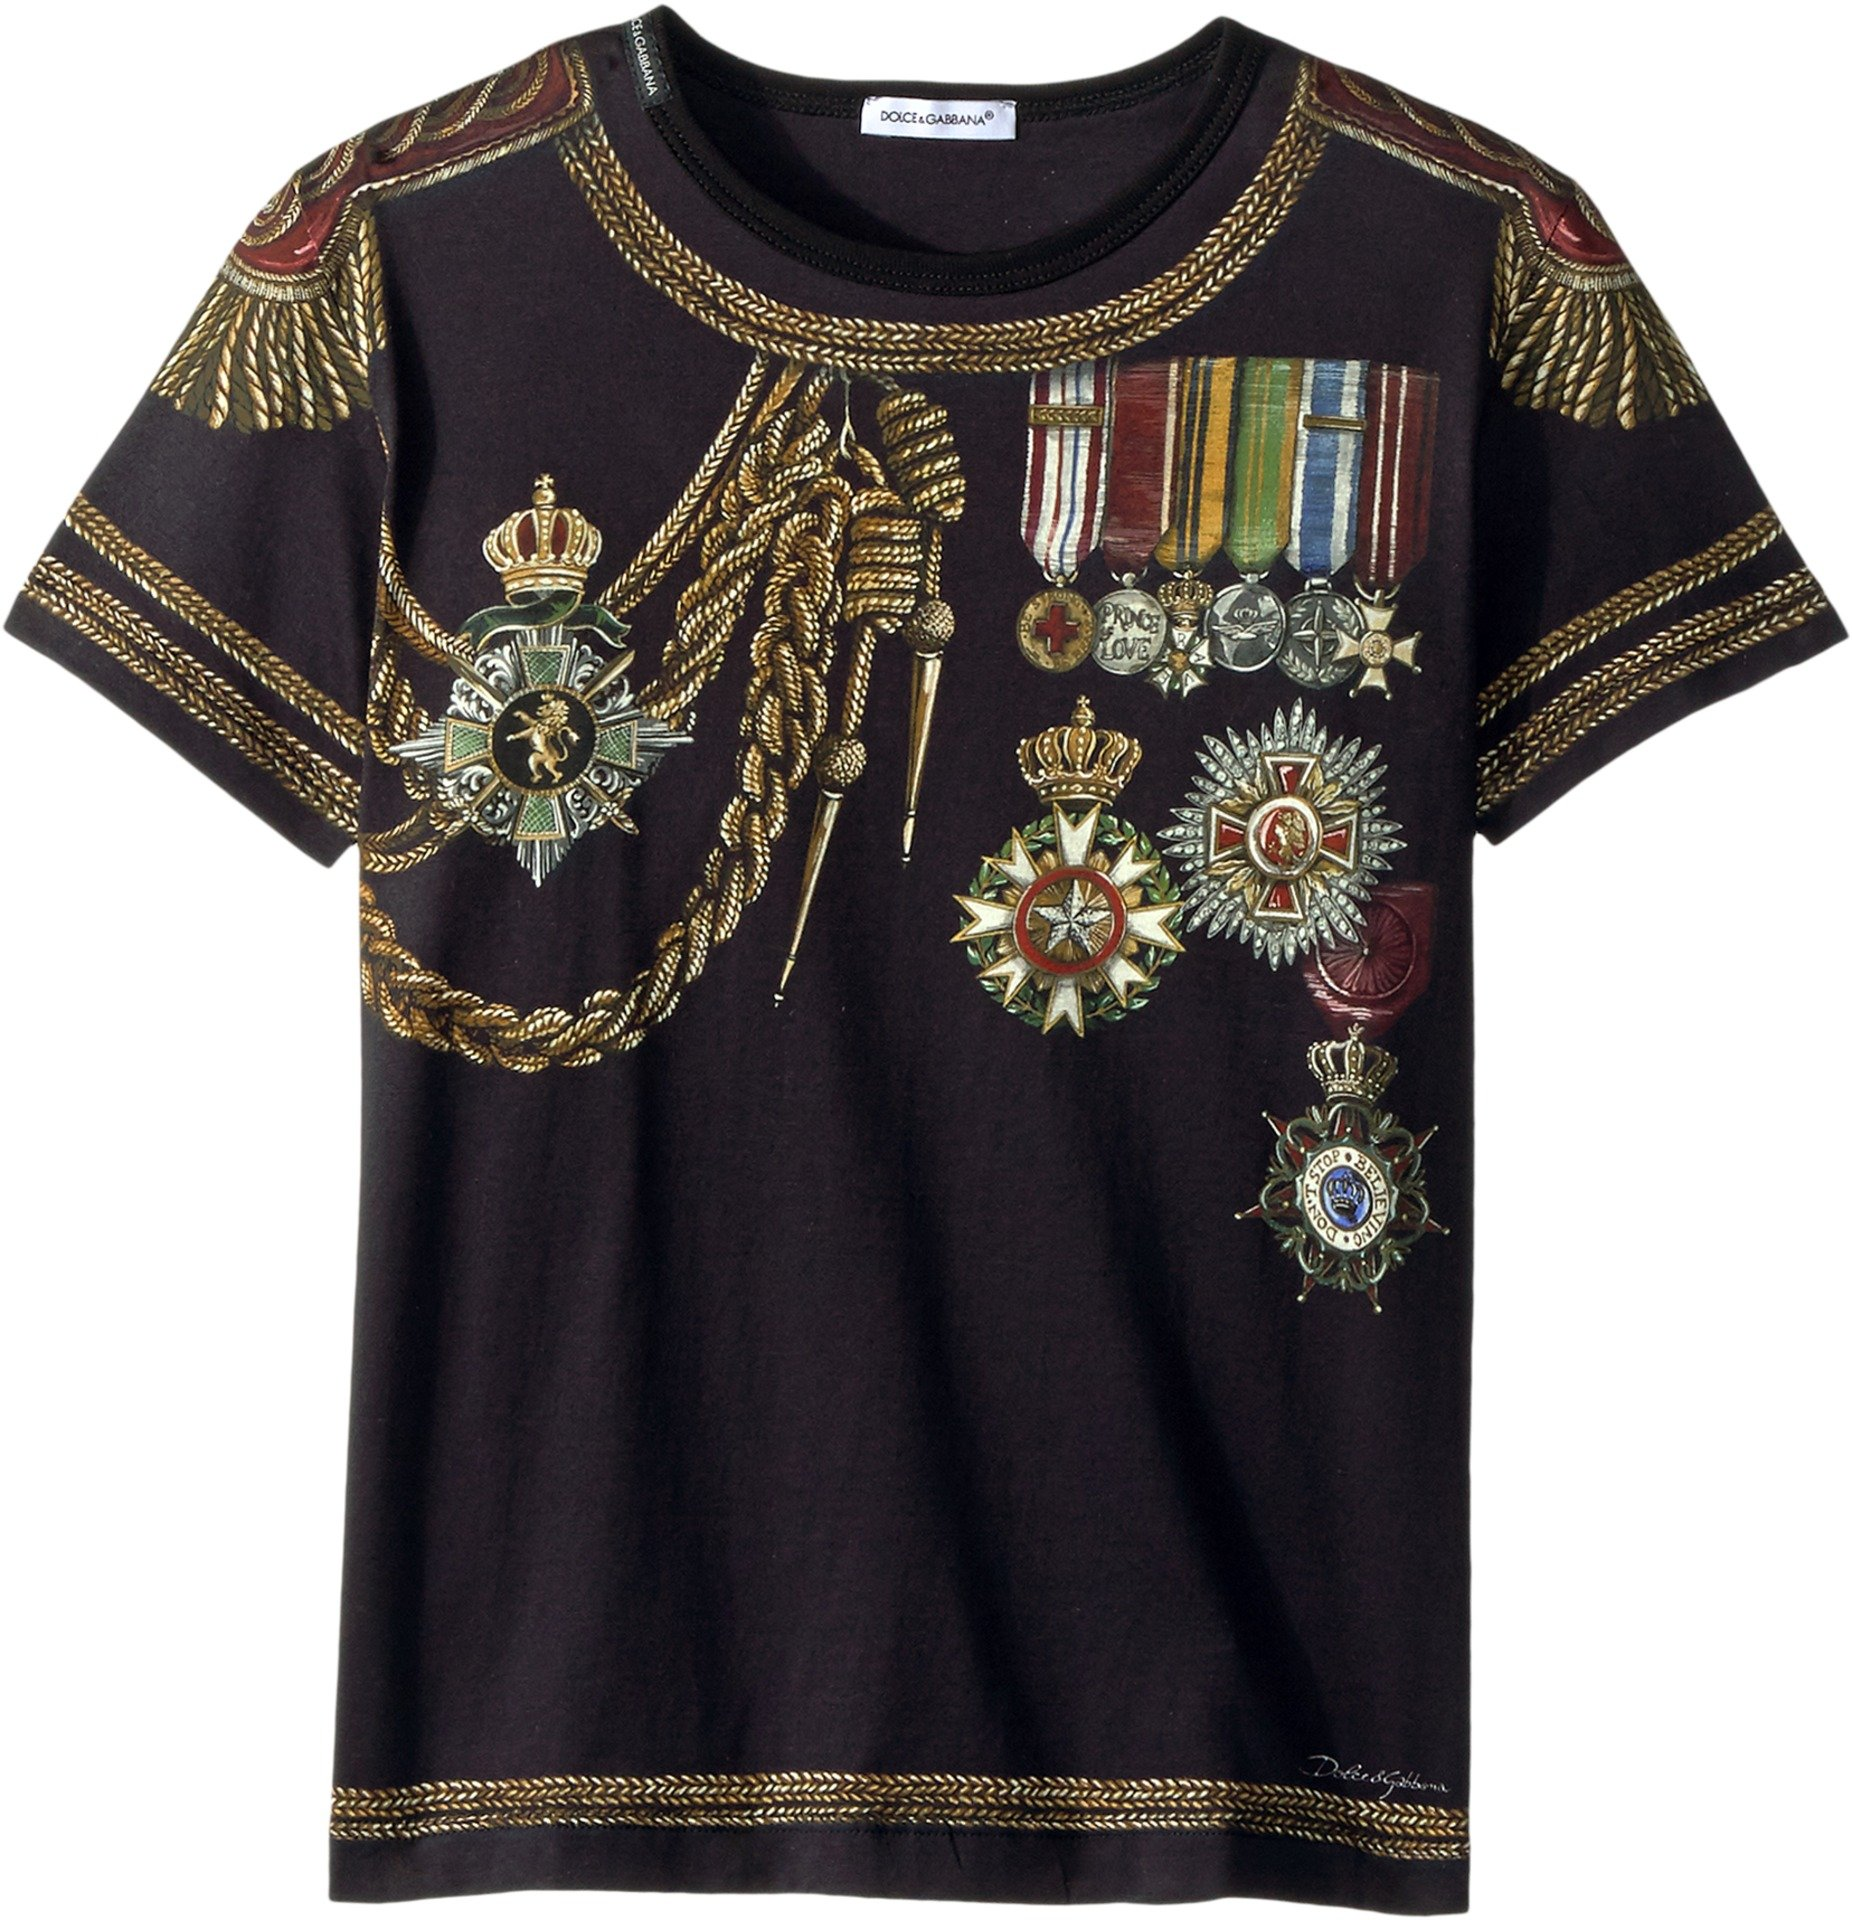 Dolce & Gabbana Kids  Baby Boy's Medallion T-Shirt (Toddler/Little Kids) Black 2T Toddler